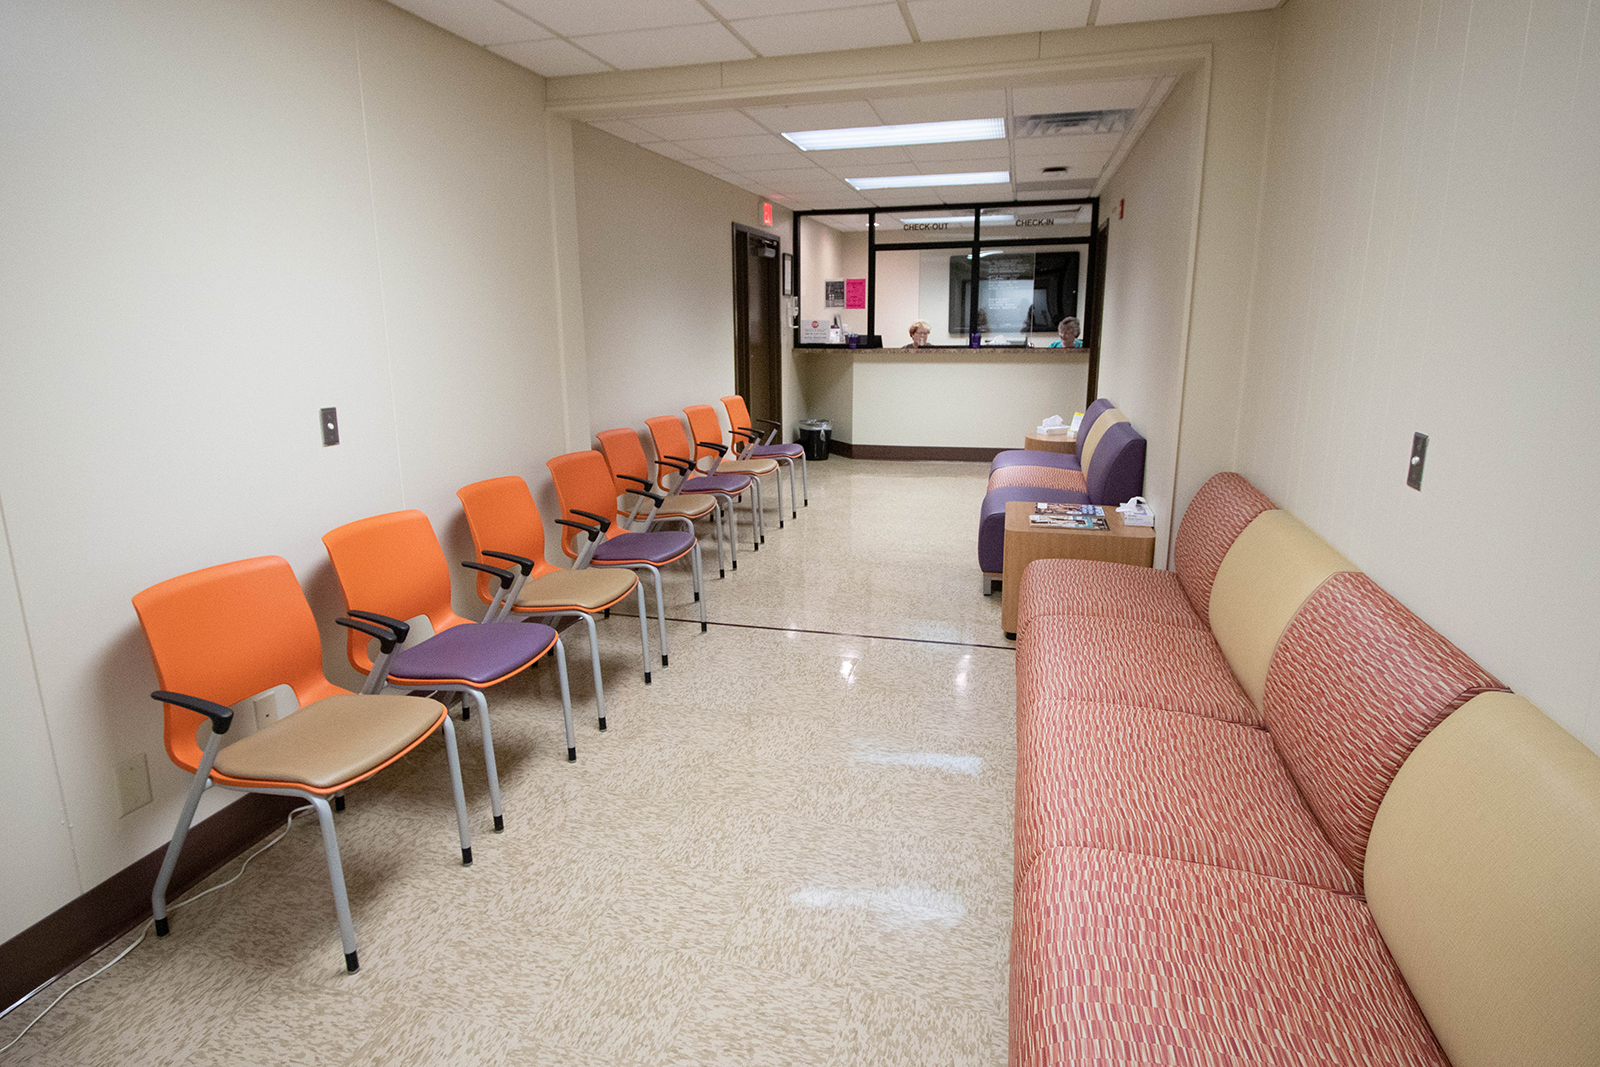 University Health Waiting Area